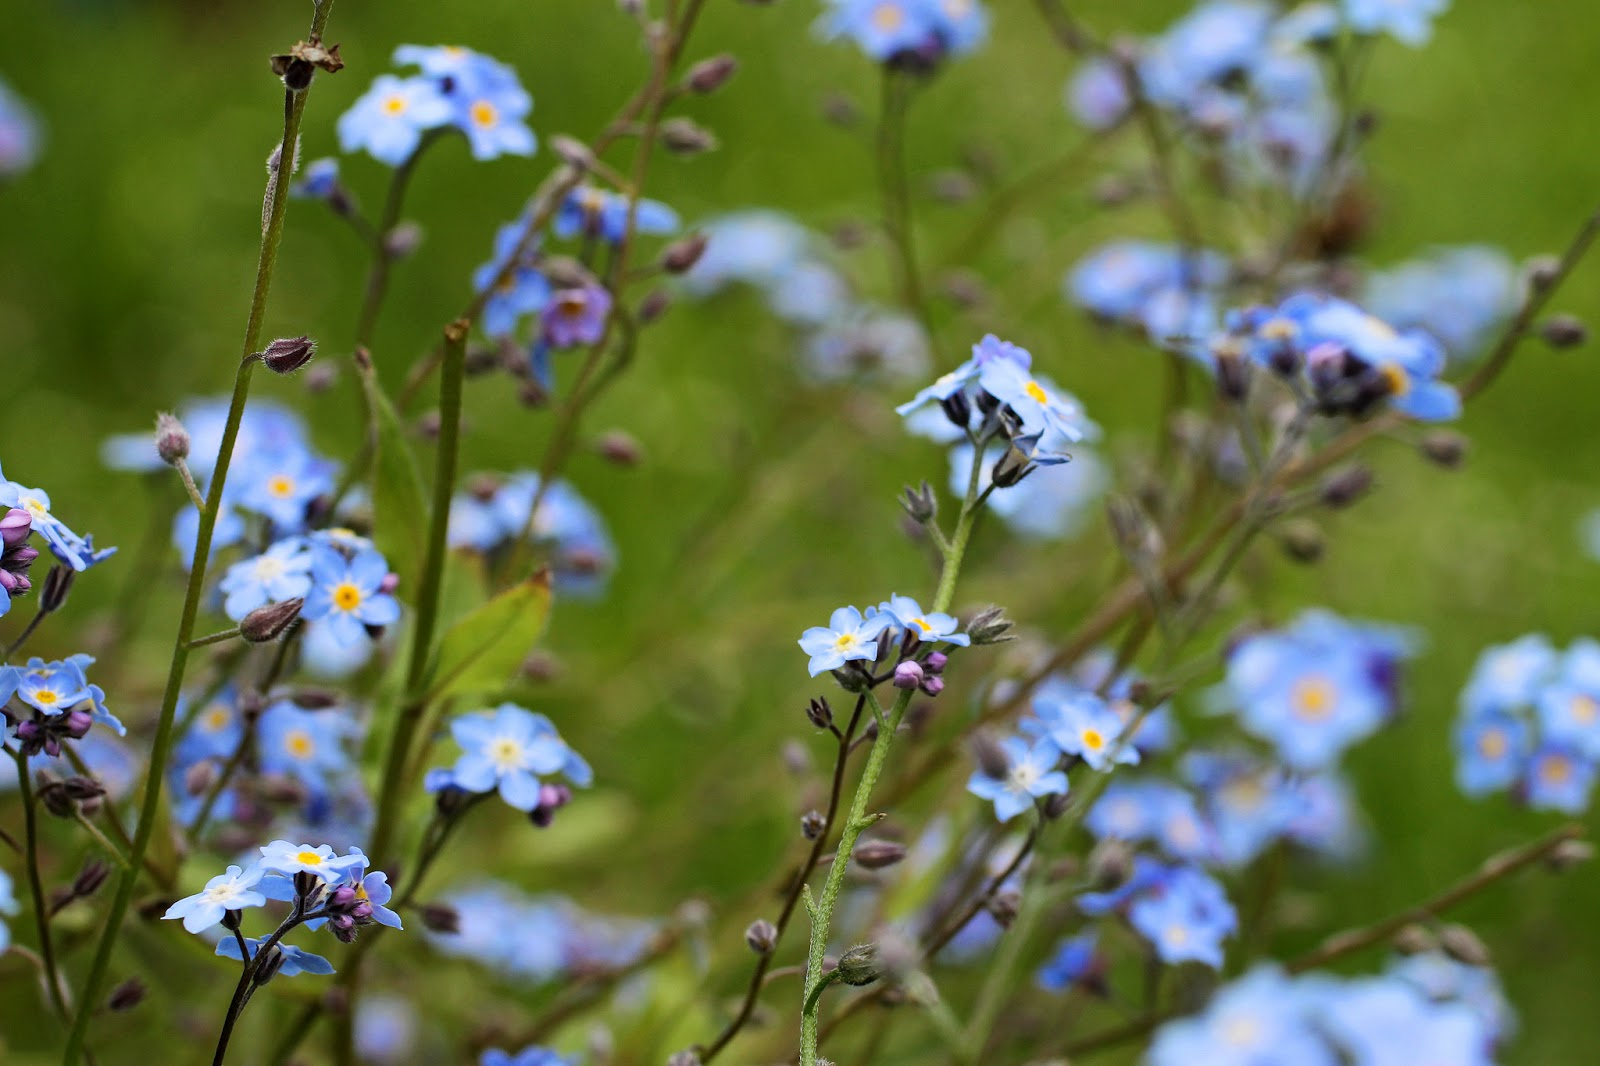 forgetmenot flower meaning  flower, Natural flower